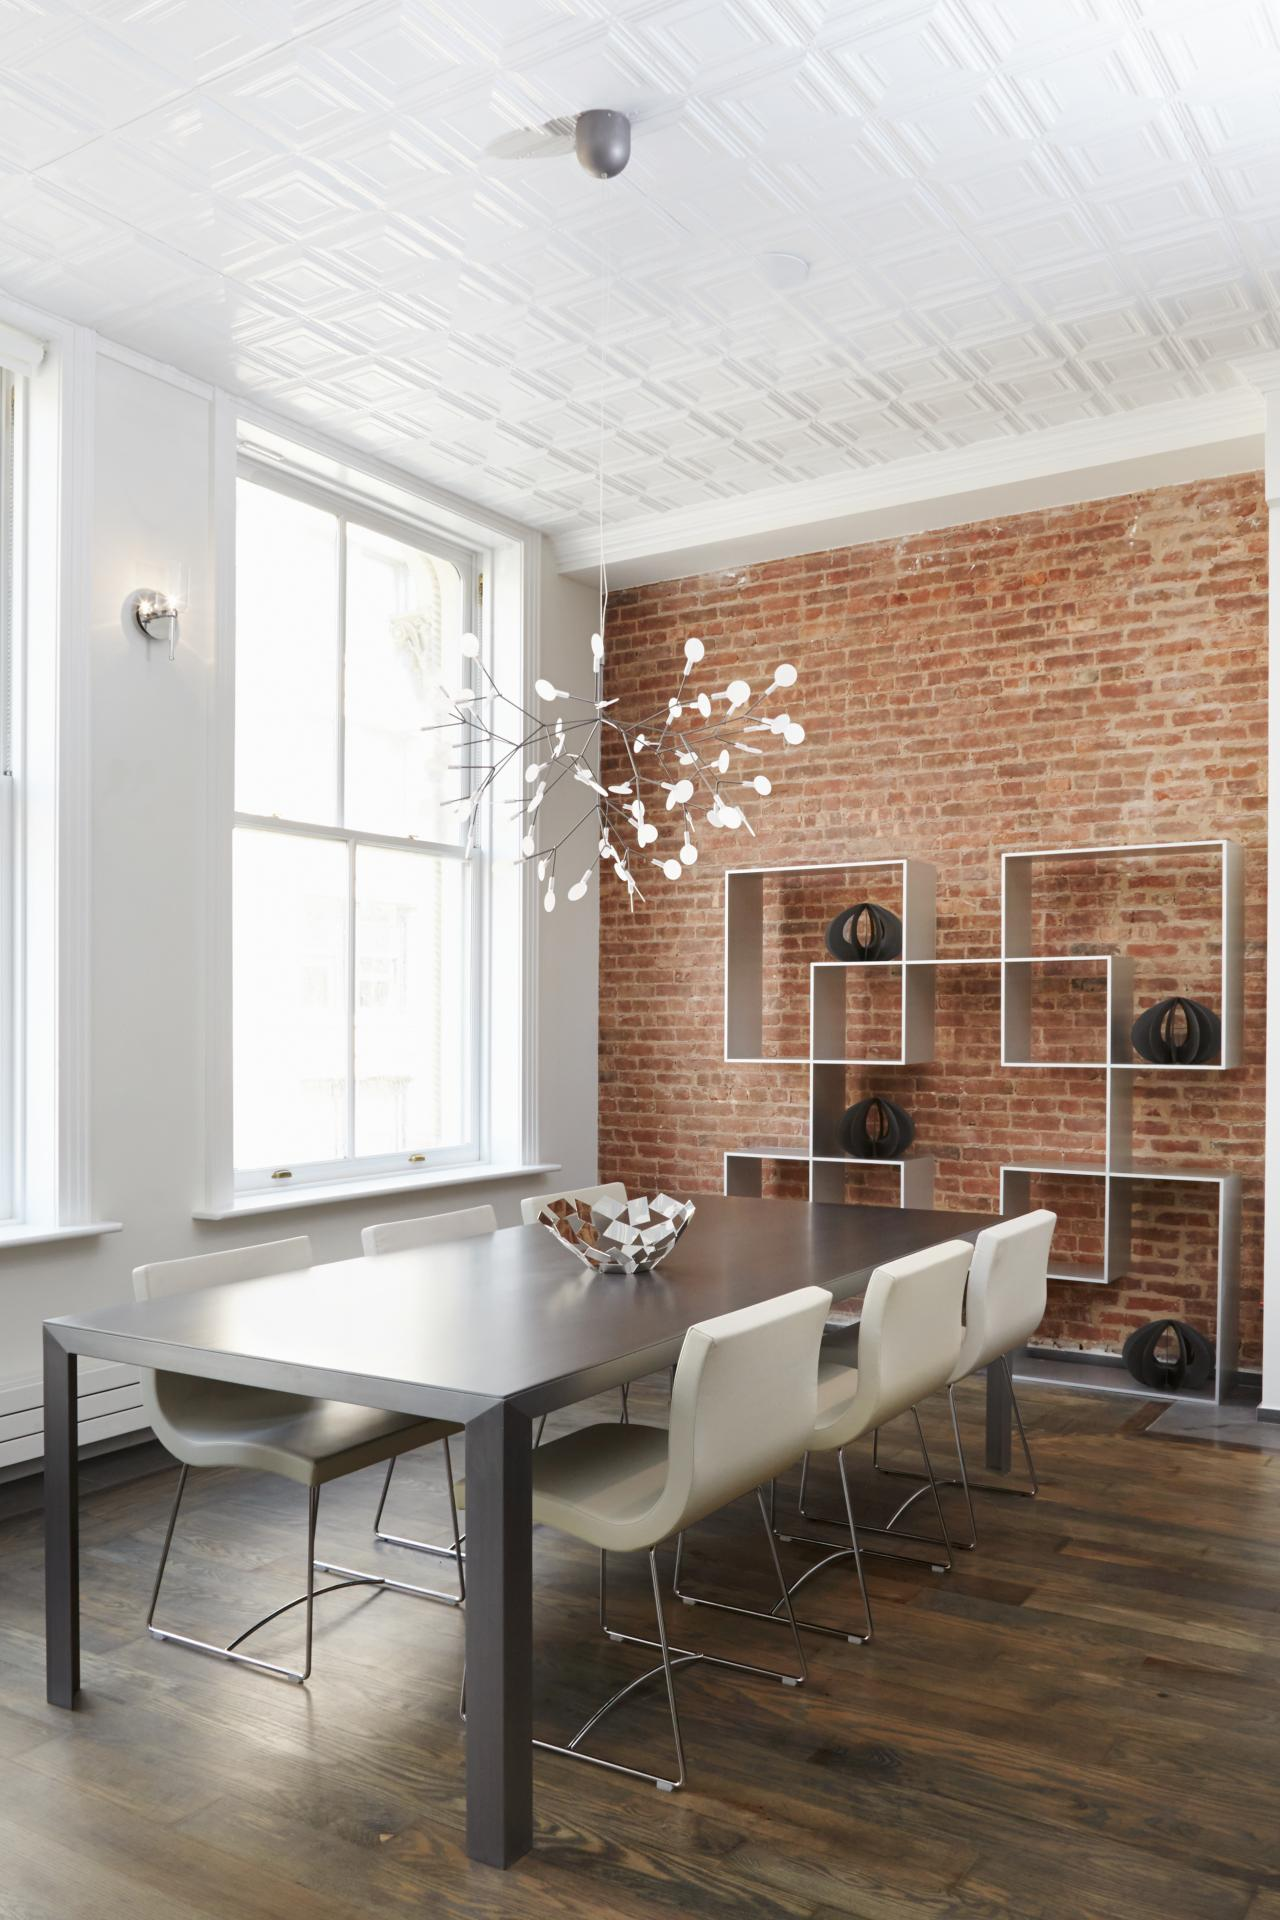 15: Shelves. Modern White Dining Room With Exposed Brick Wall